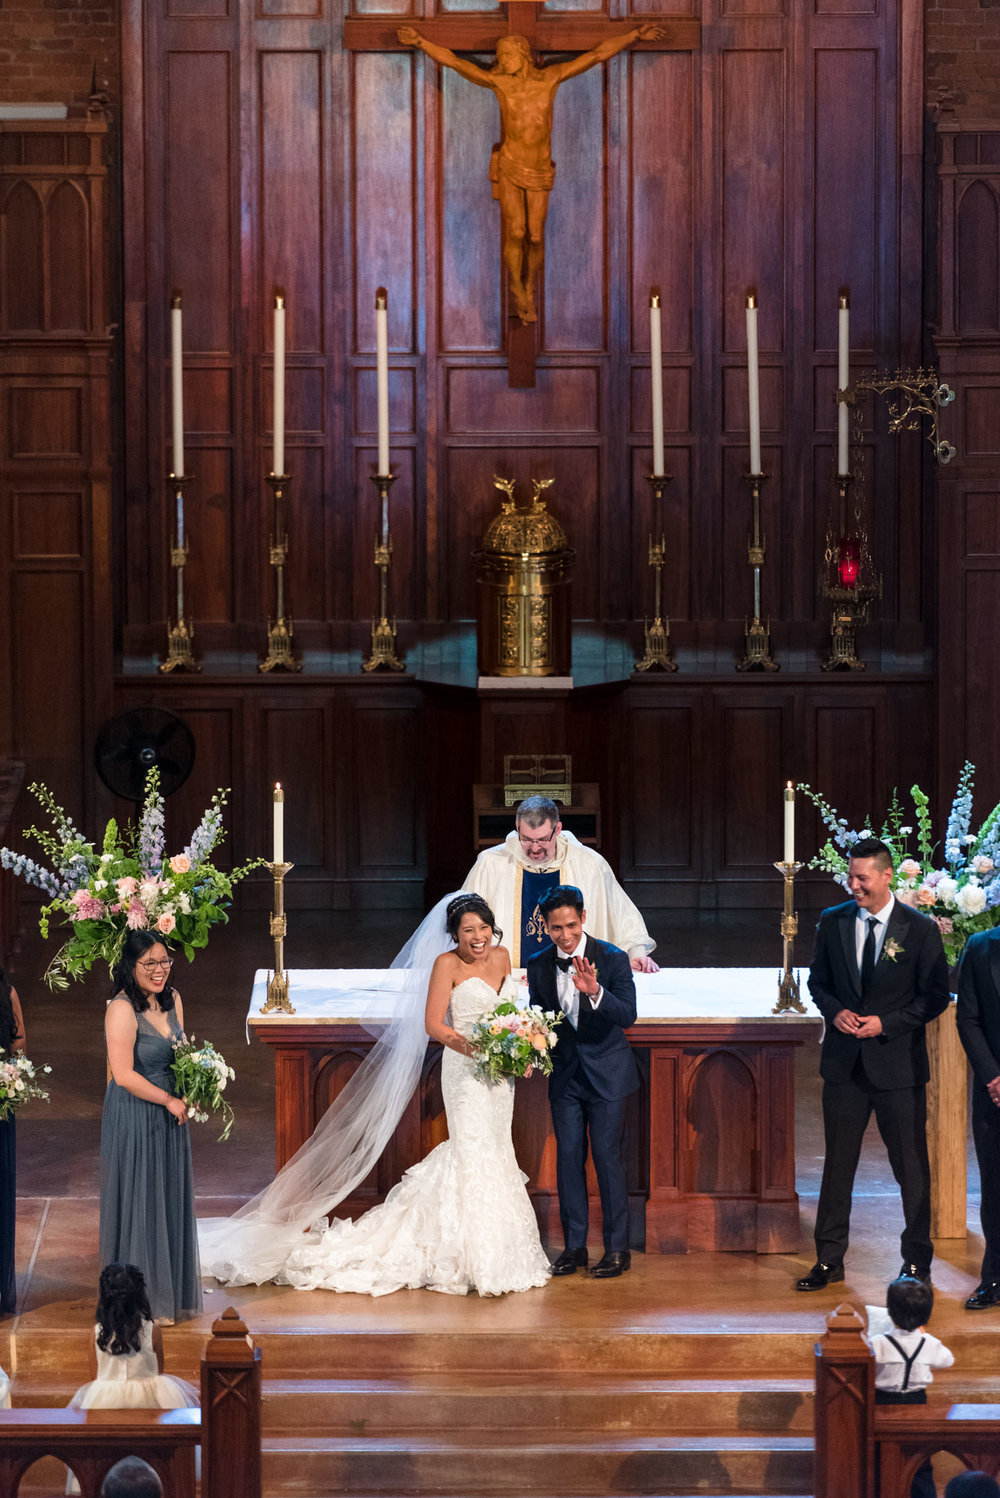 Asian Bride and Groom Happy Just Married at Blessed Sacrament Ca